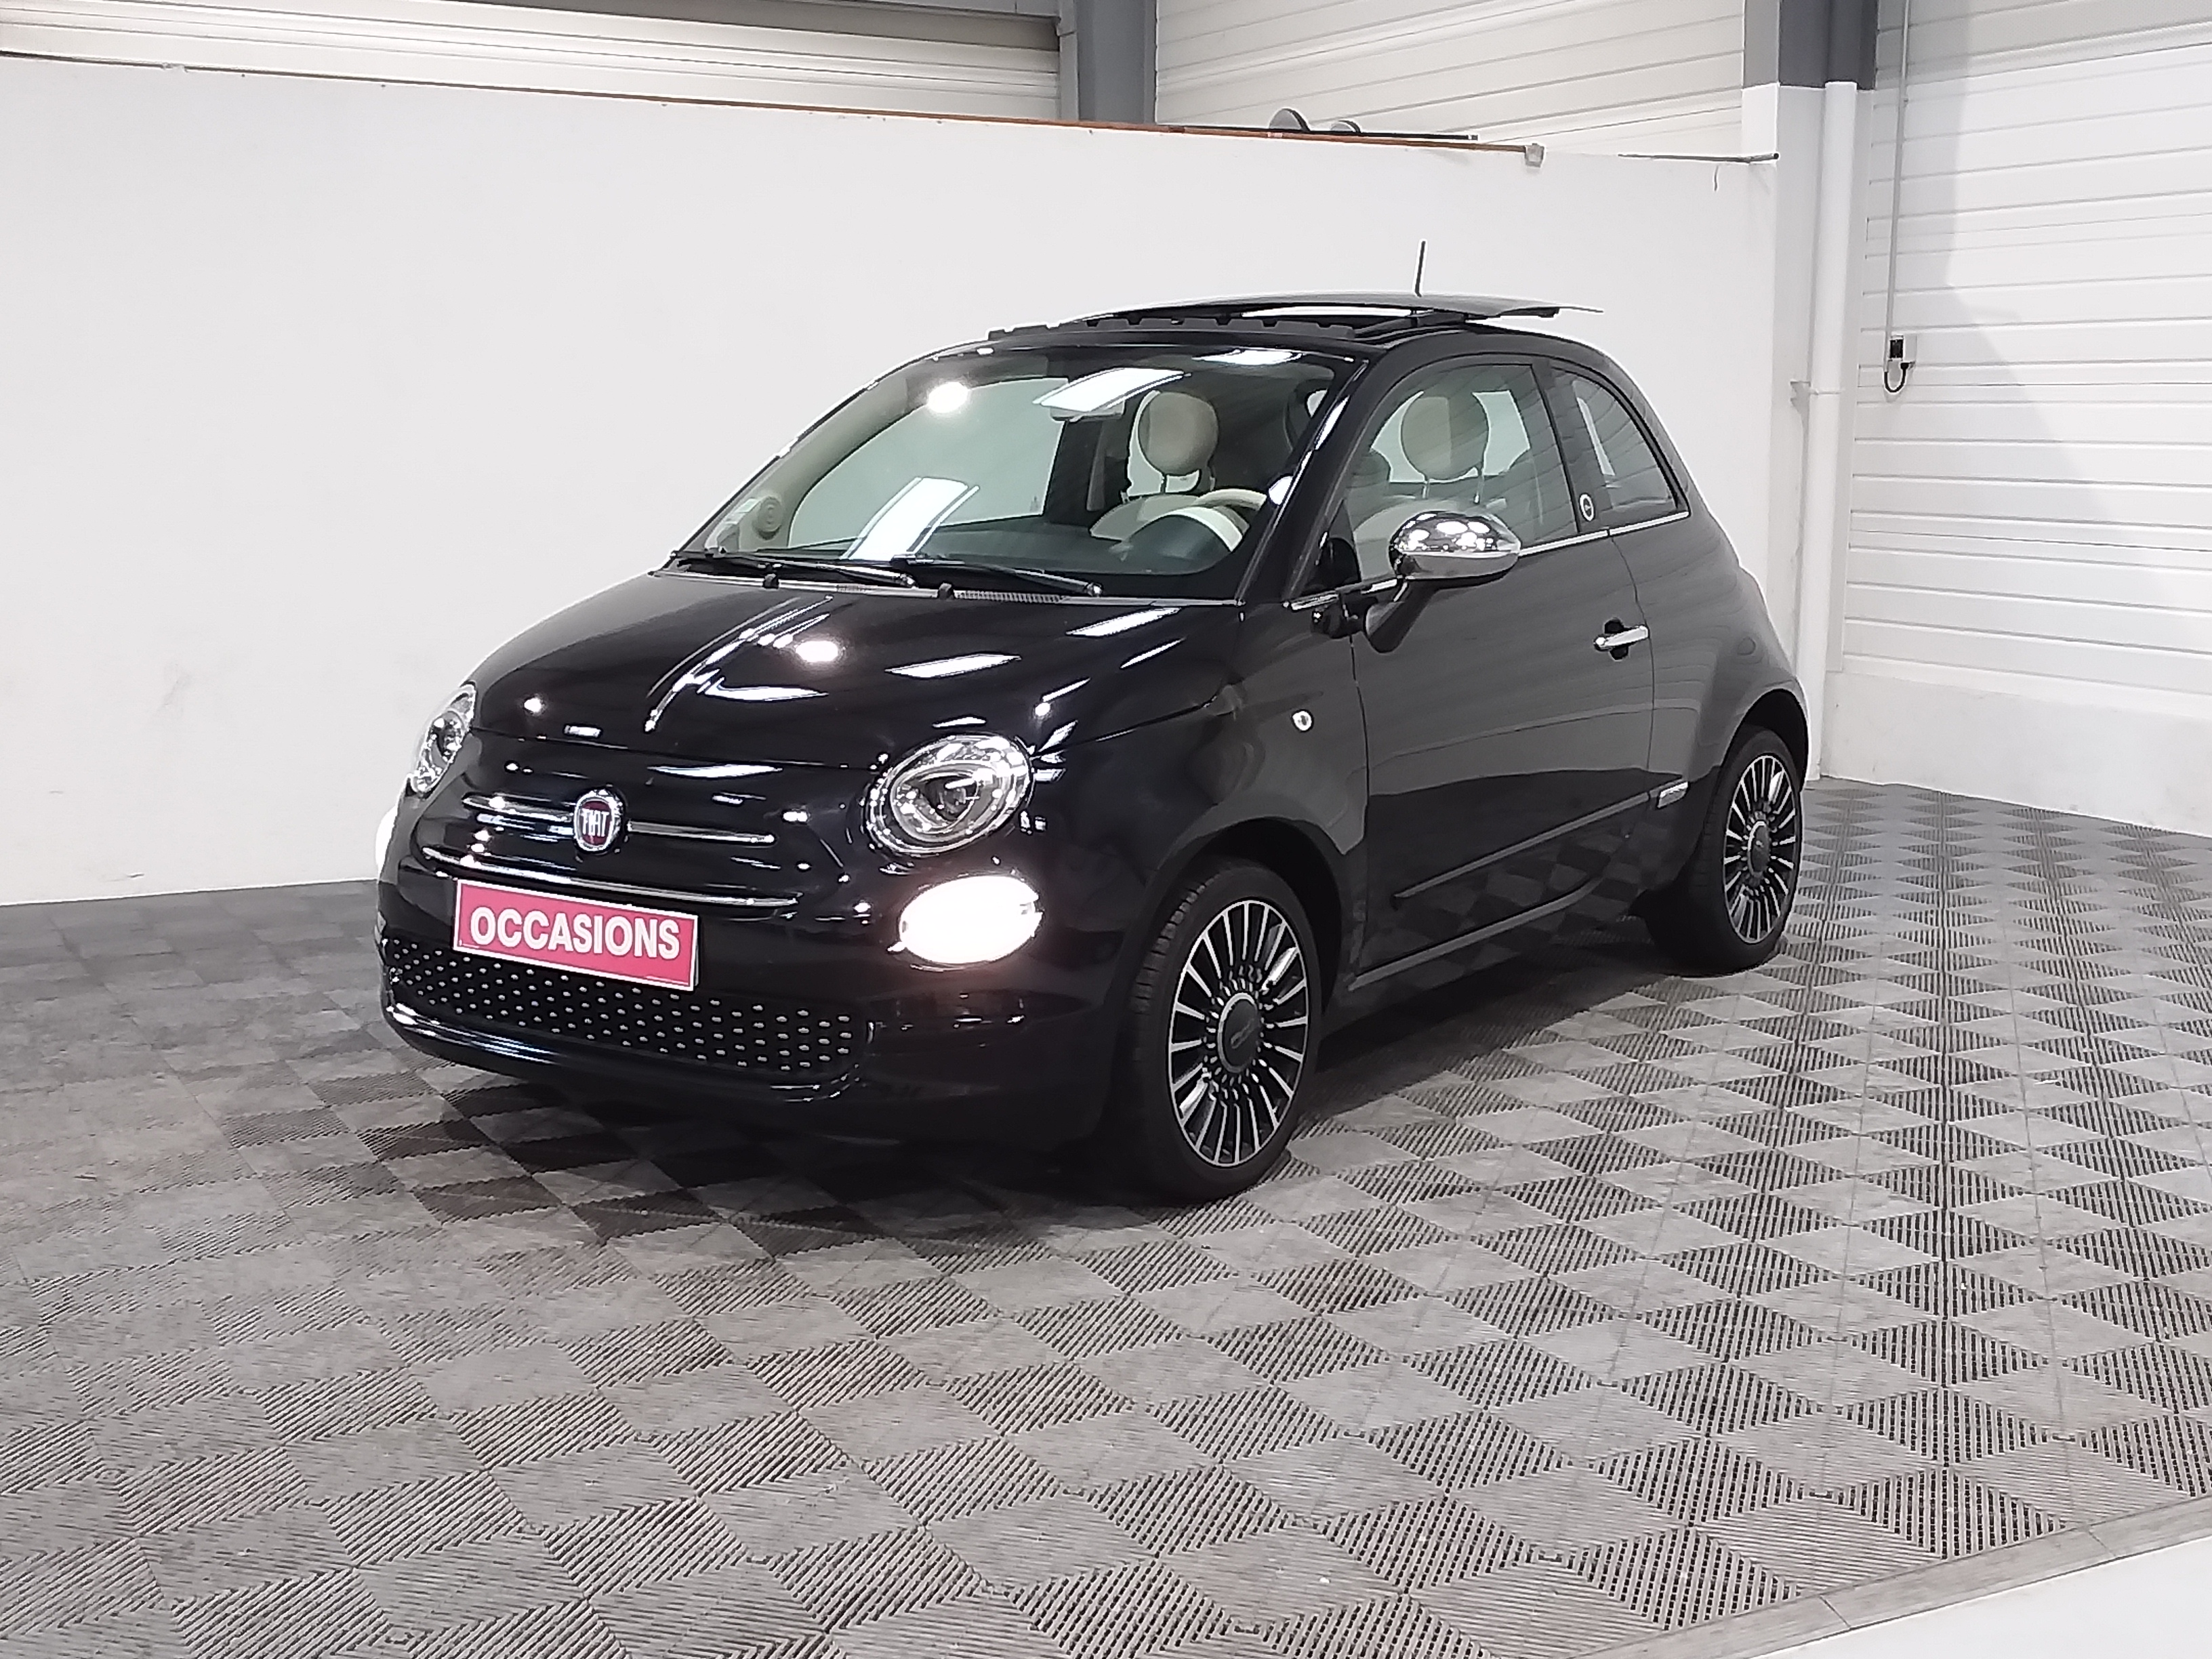 FIAT 500 SERIE 6 EURO 6D 1.2 69 ch by Harcourt d'occasion